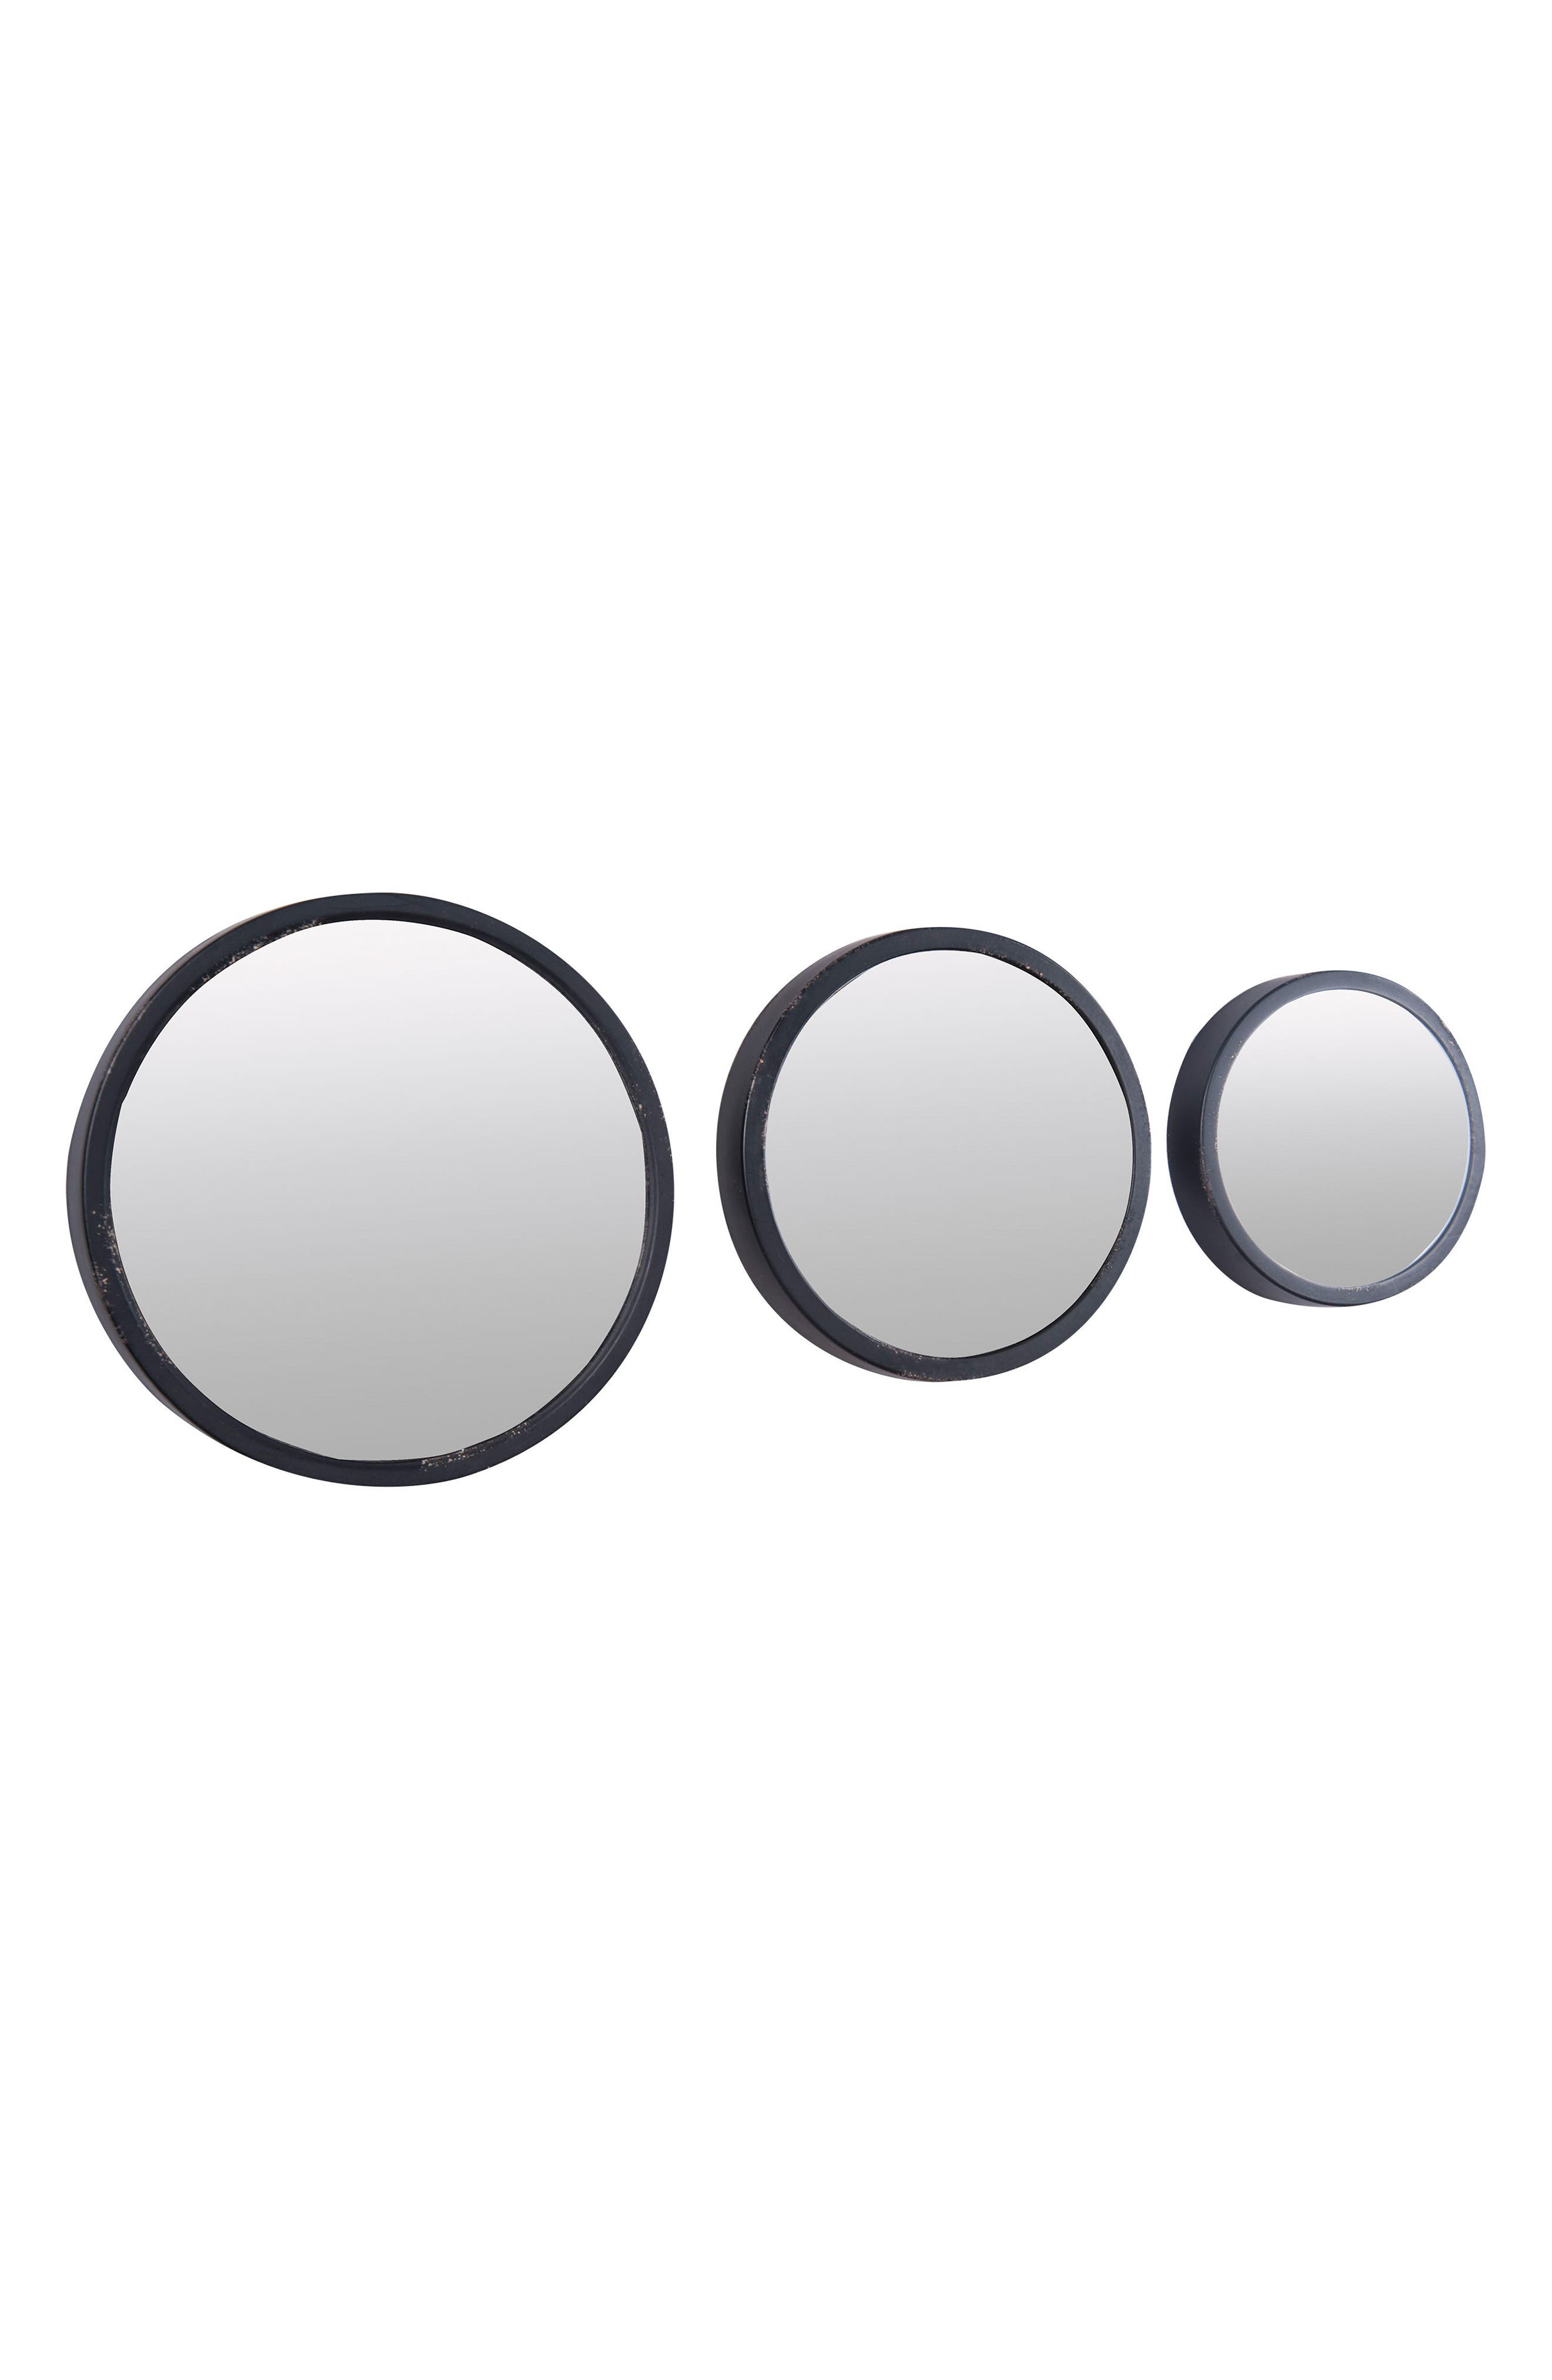 Set of 3 Round Mirrors,                             Main thumbnail 1, color,                             Glass